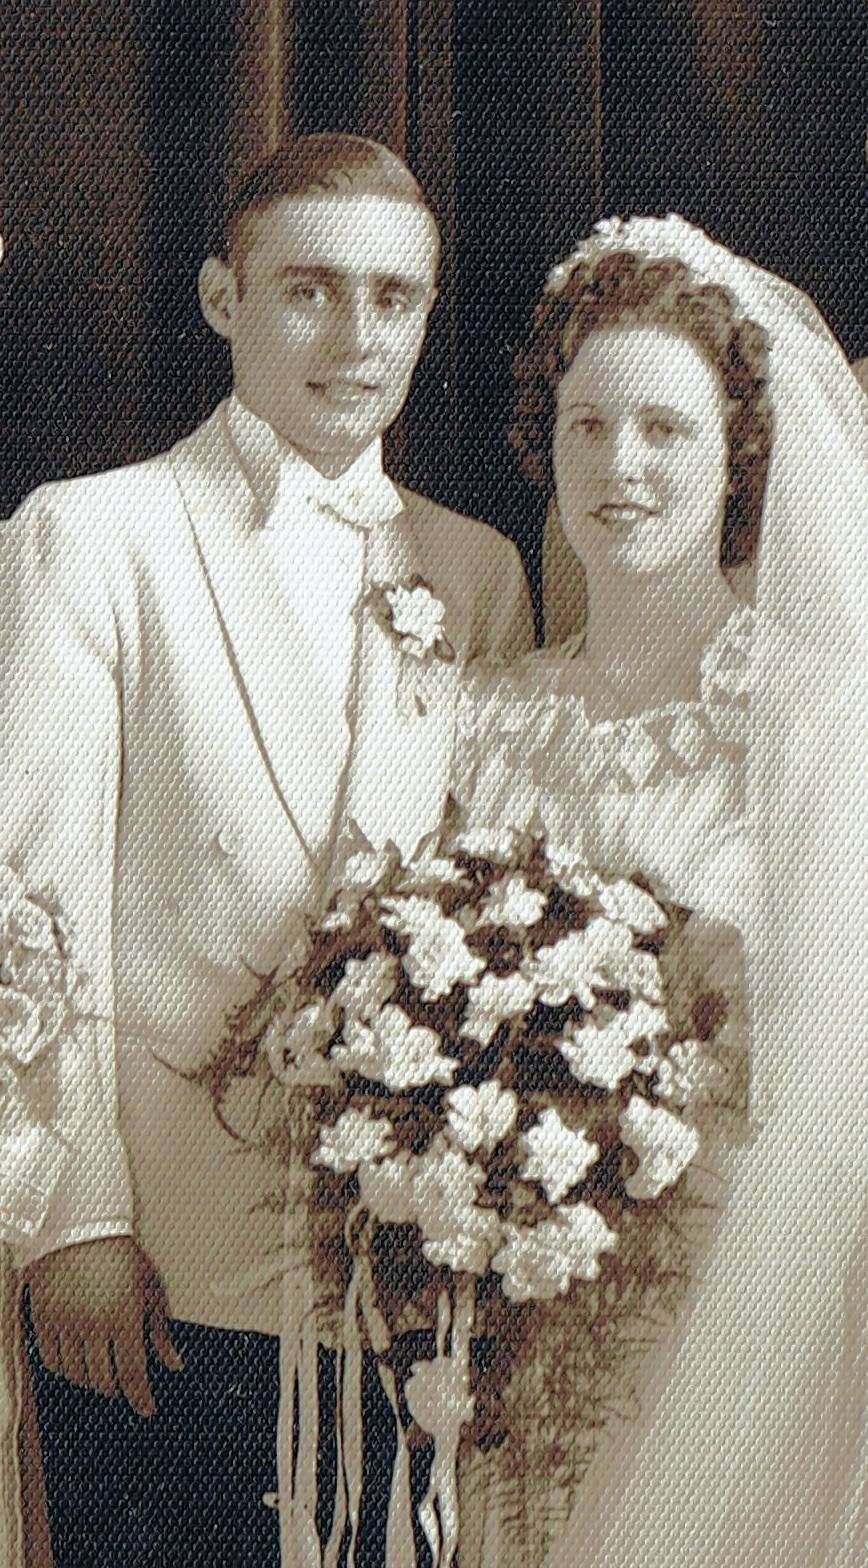 Des Plaines couple celebrates 75 years of marriage